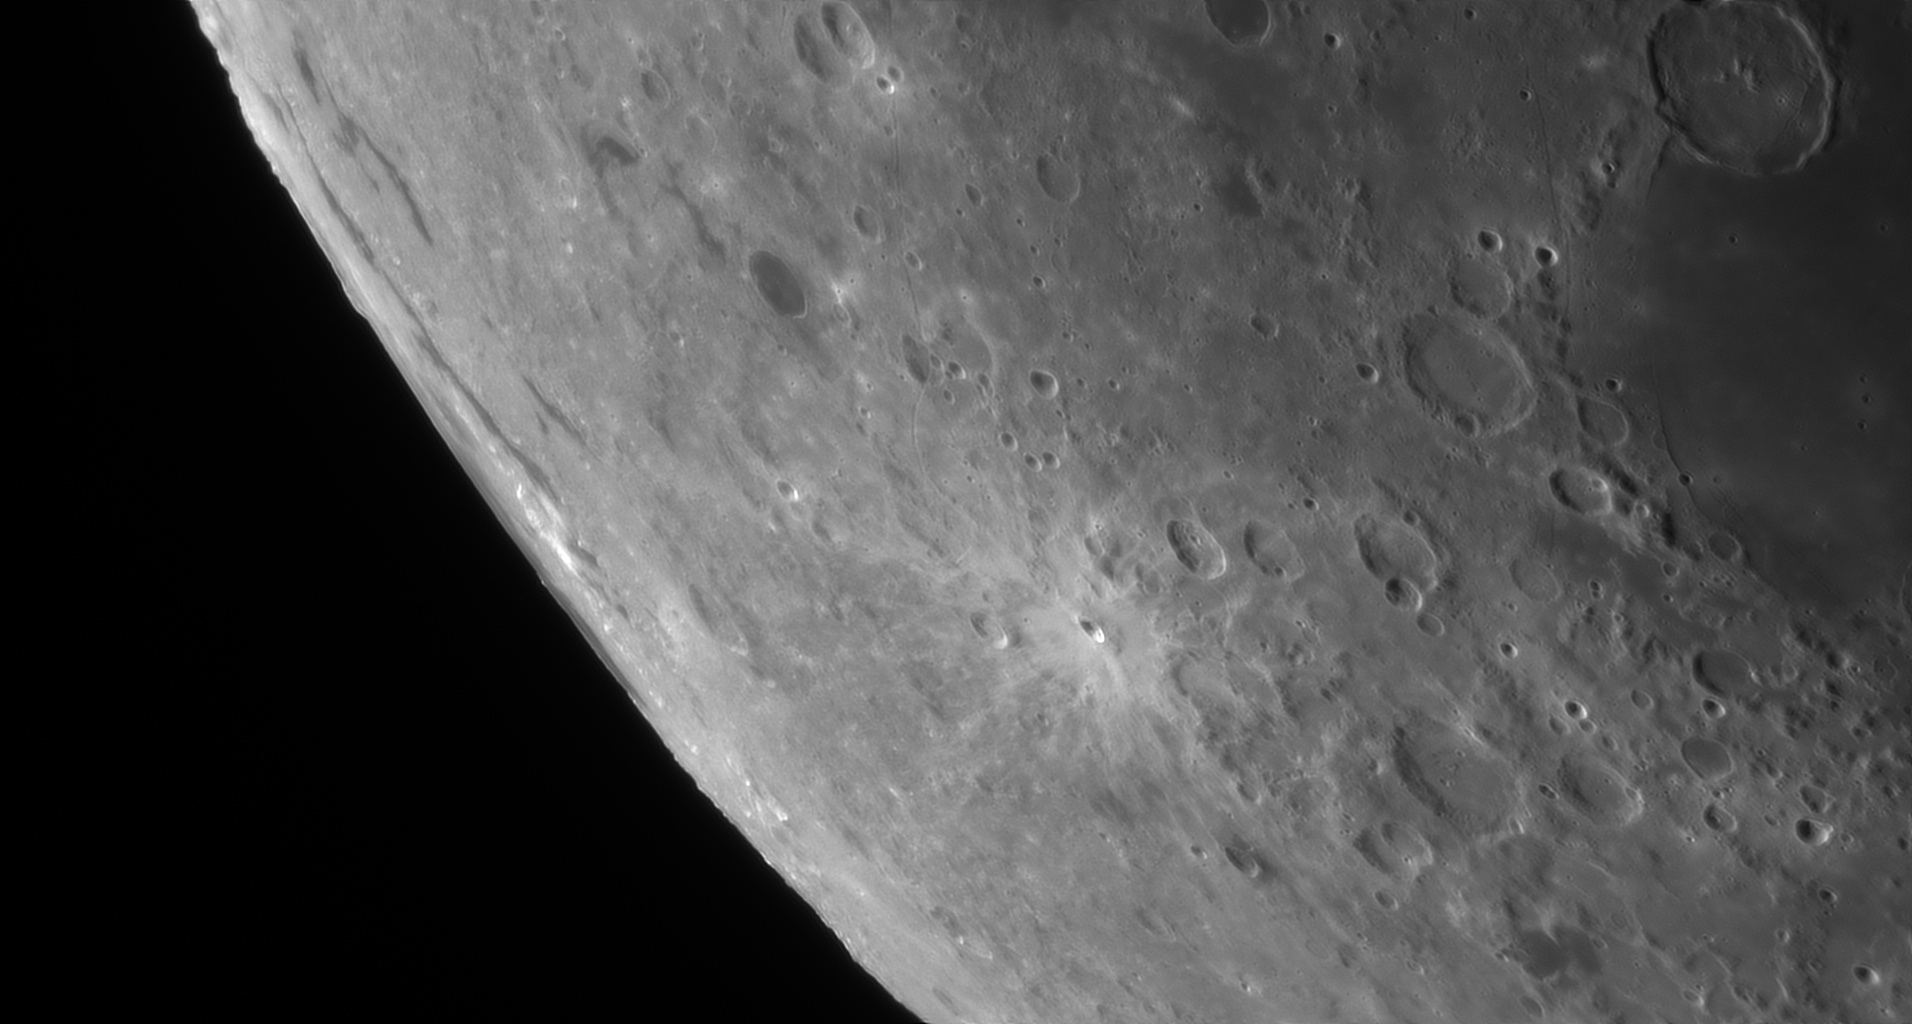 5d97a7754328e_Moon_060045_230919_ZWOASI290MM_Rouge_23A_AS_P40_lapl4_ap360.jpg.d209be37877a8c6ad4d3f8afcabc43be.jpg